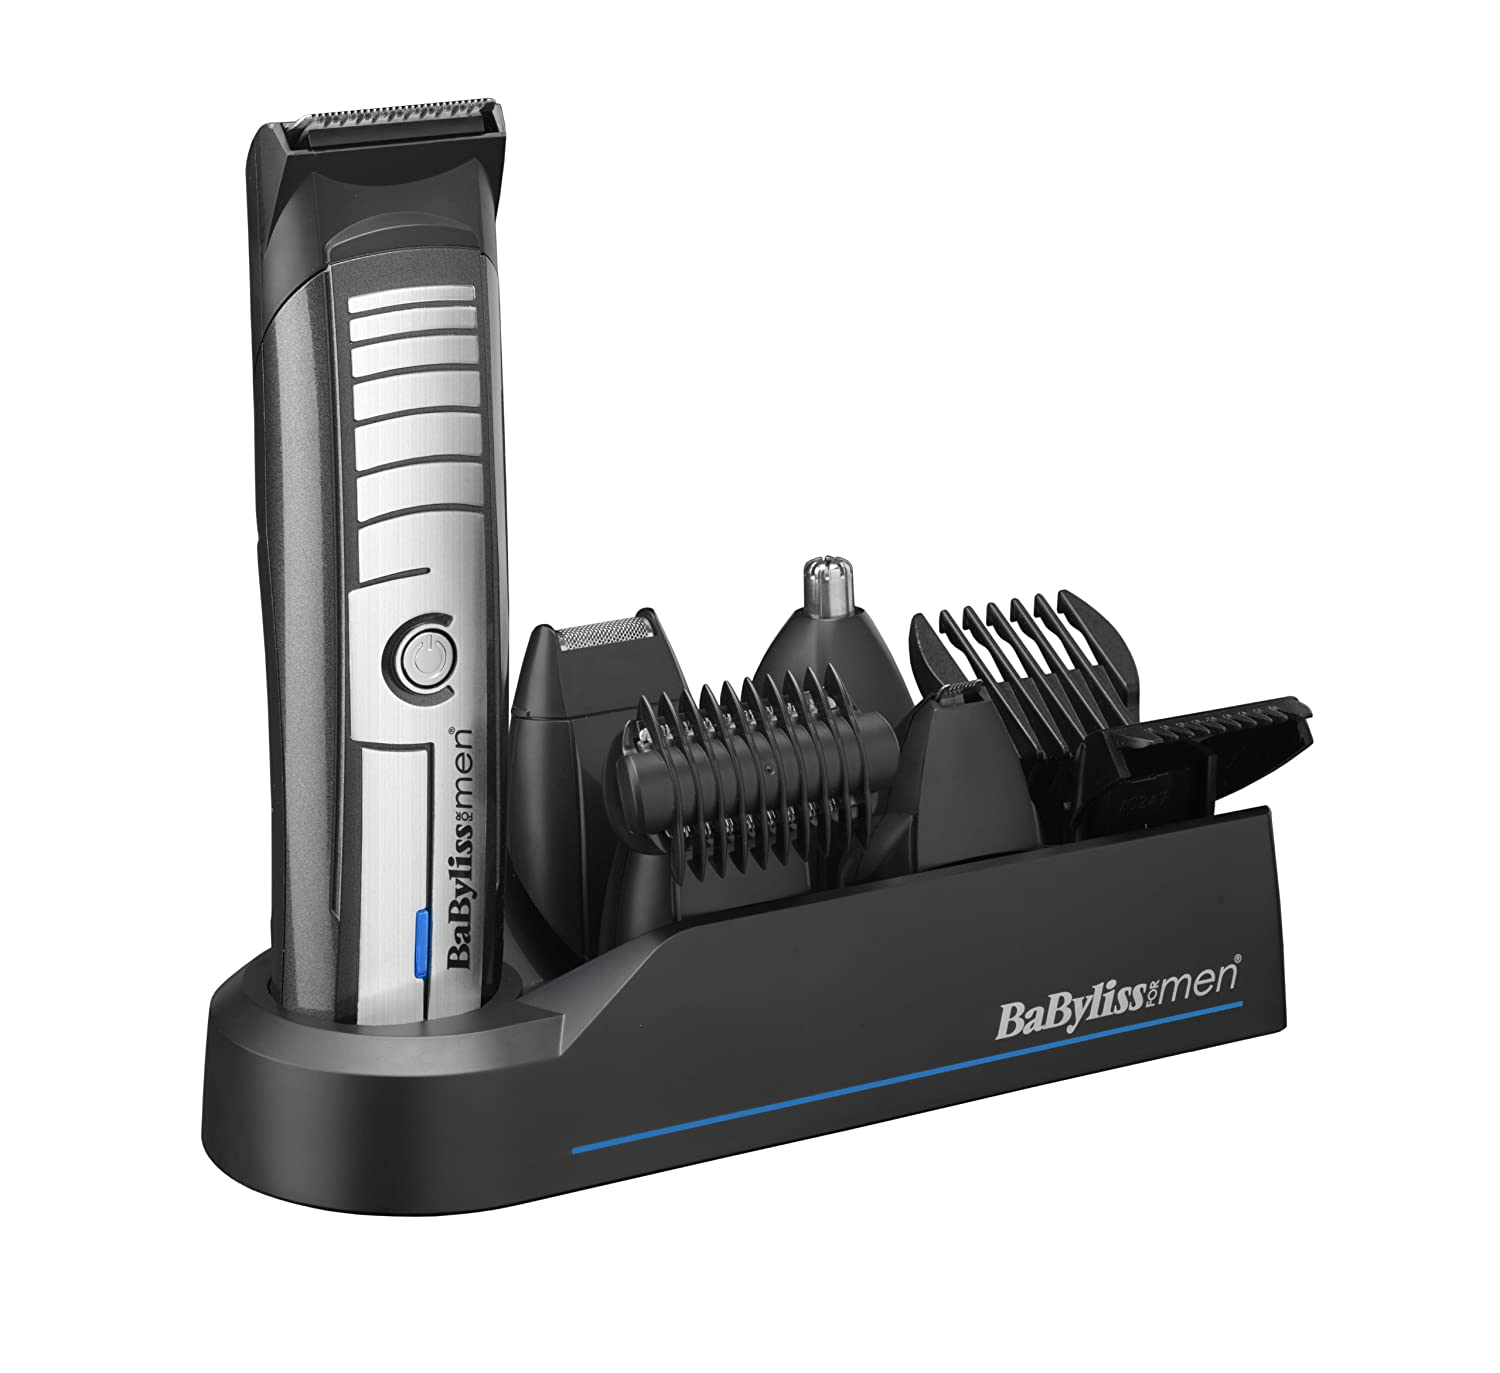 babyliss for men 7420u super groomer review beard trimmer reviews. Black Bedroom Furniture Sets. Home Design Ideas